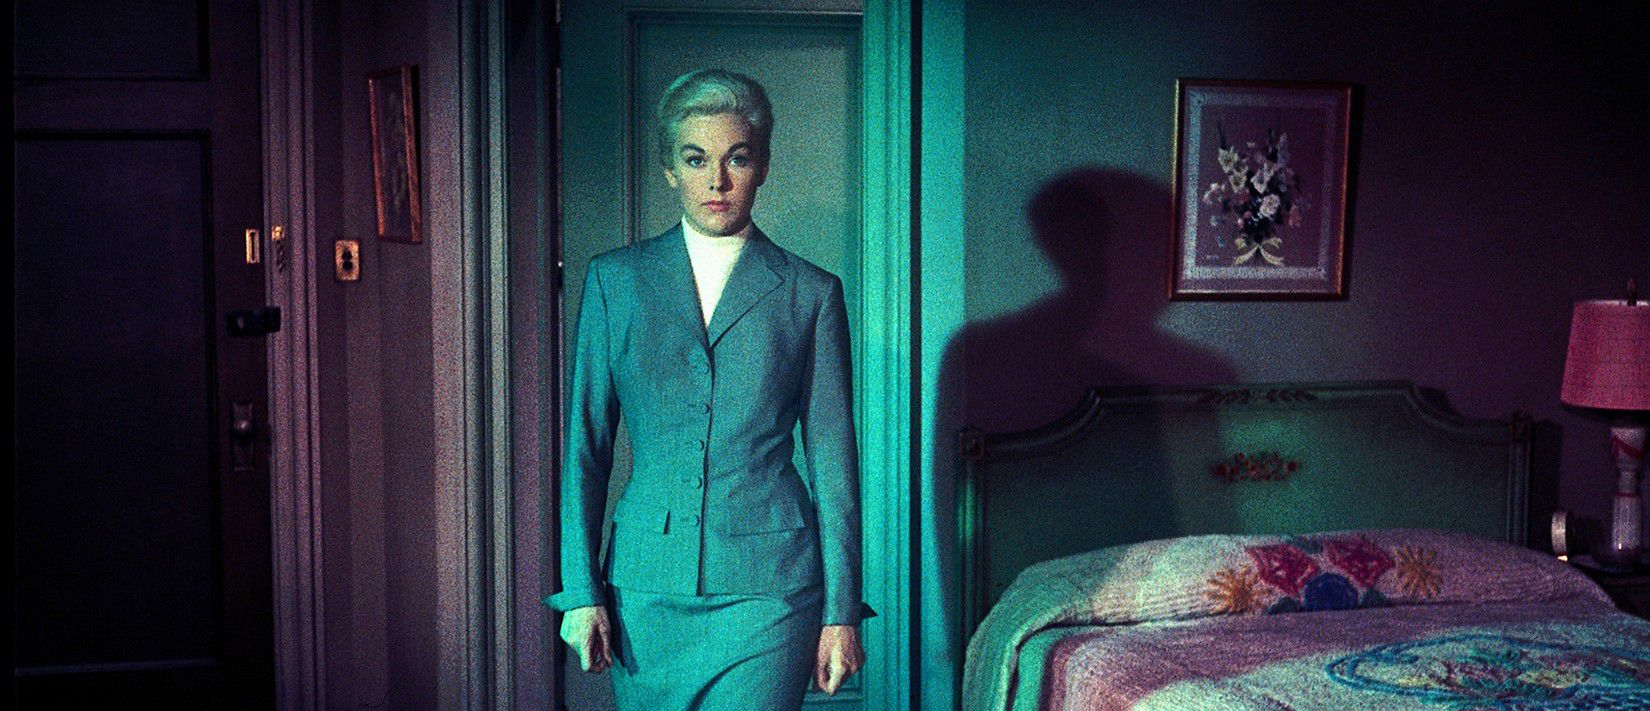 a personal analysis of vertigo a movie by alfred hitchcock Alfred hitchcock's san francisco and cary grant sought for hitchcock film in los angeles times ↑ vertigo: the making of a hitchcock classic.